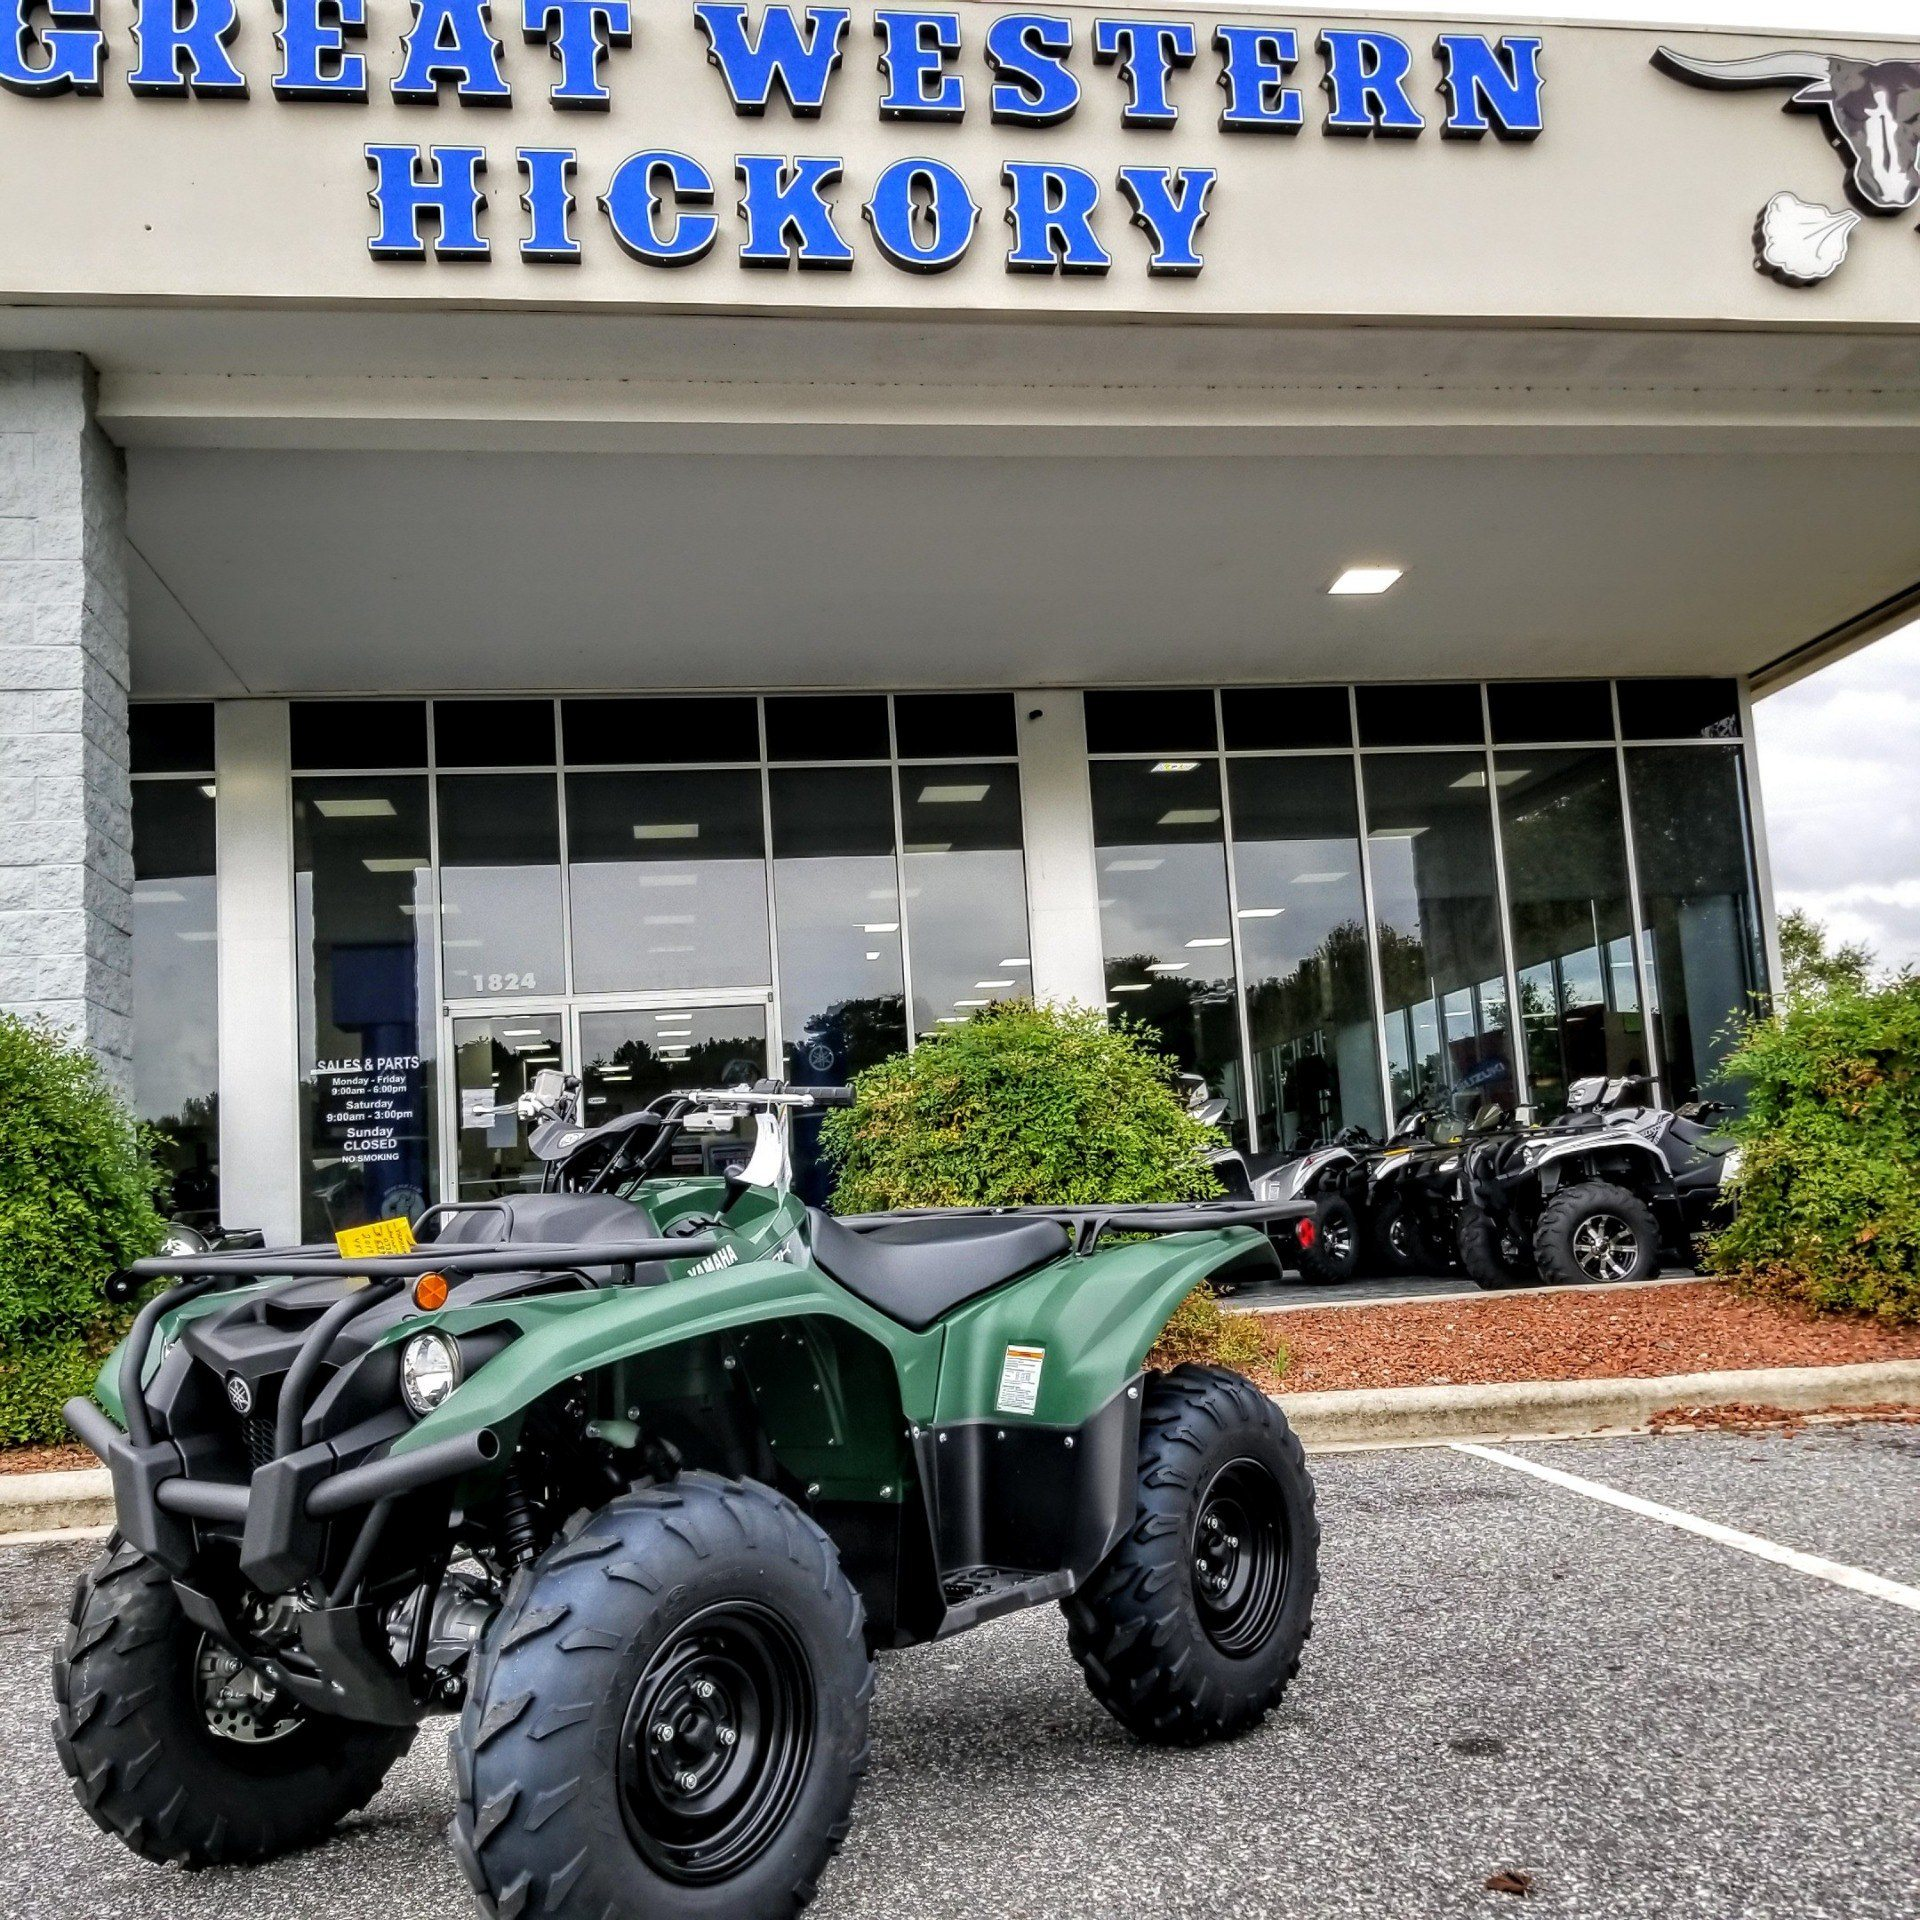 2019 Yamaha Kodiak 700 in Hickory, North Carolina - Photo 1